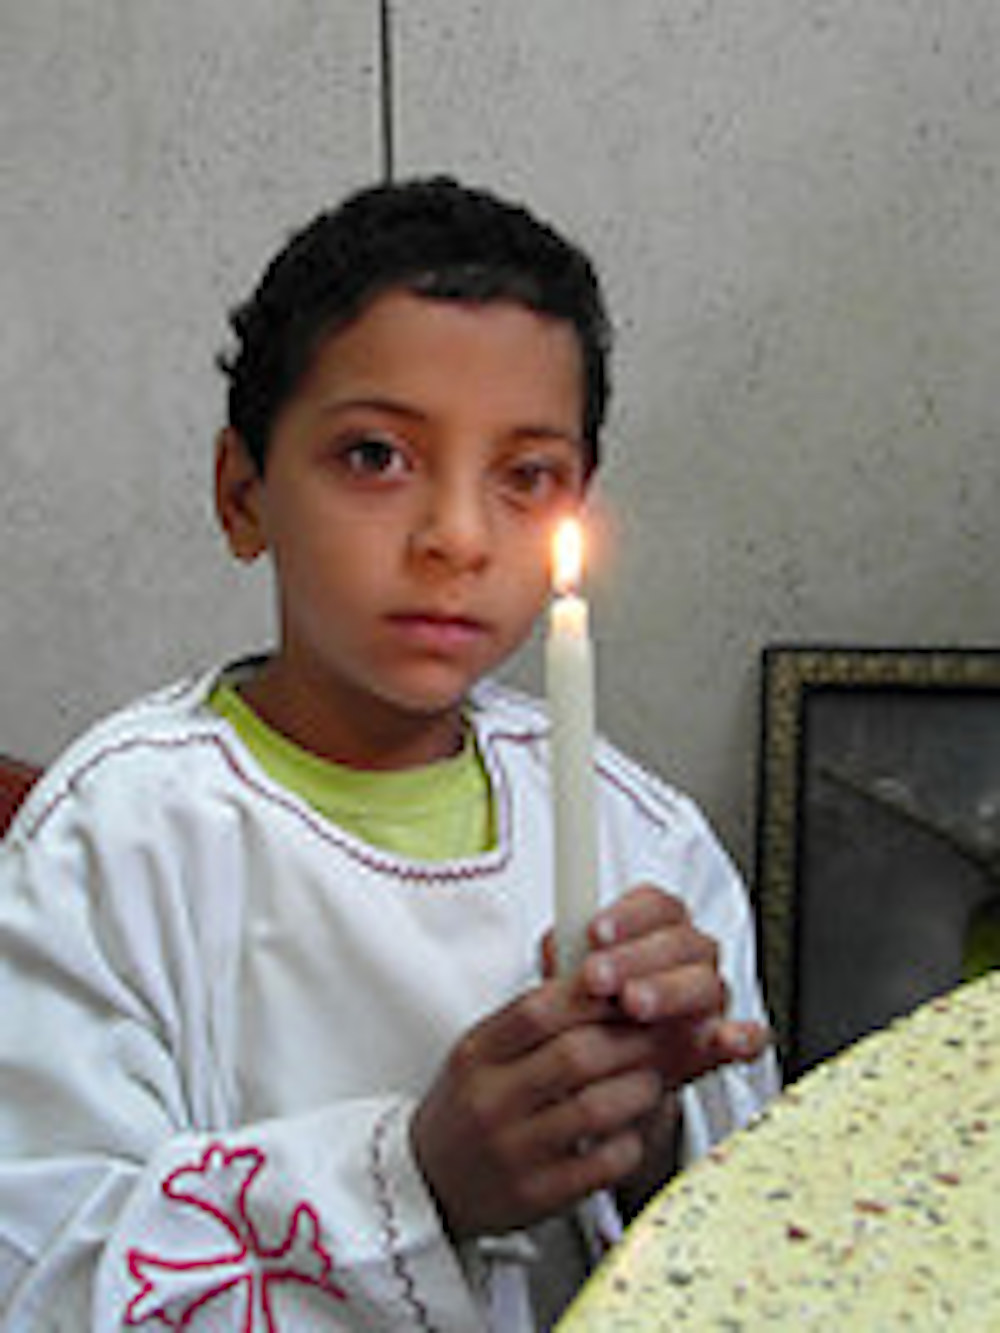 Boy in Egypt